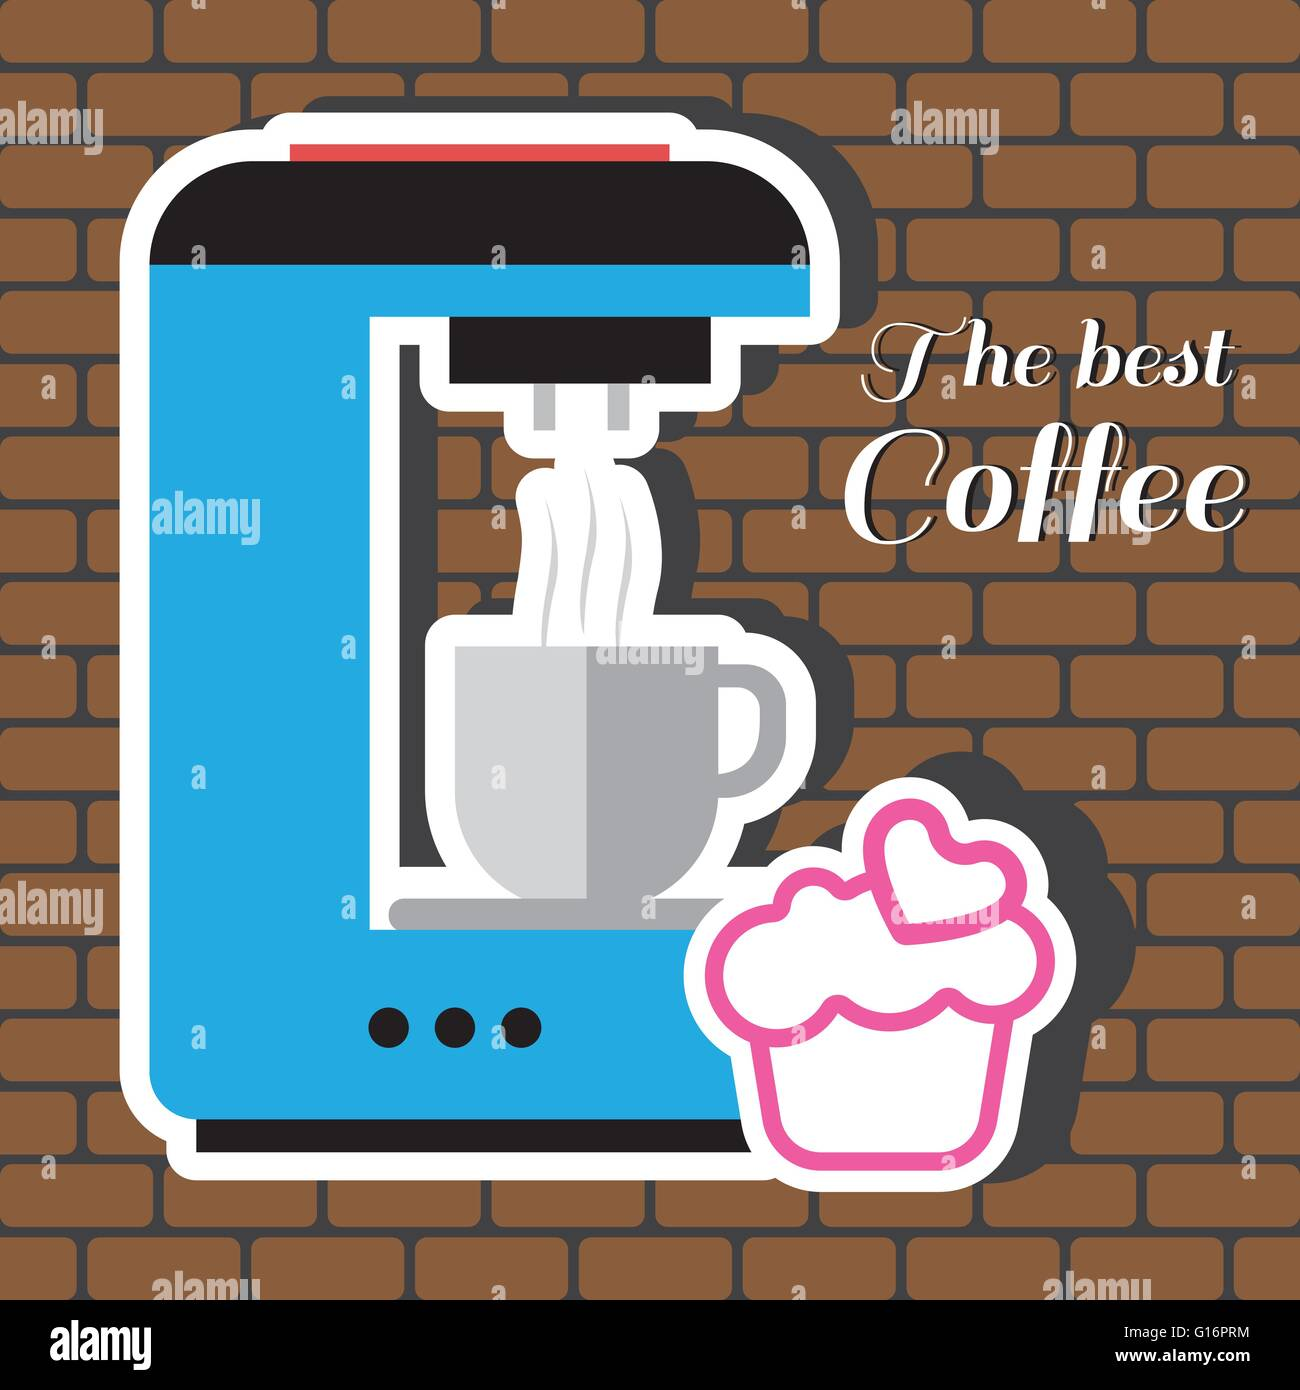 A Blue Coffee Maker Machine With Cup Of Pink Cake Heart